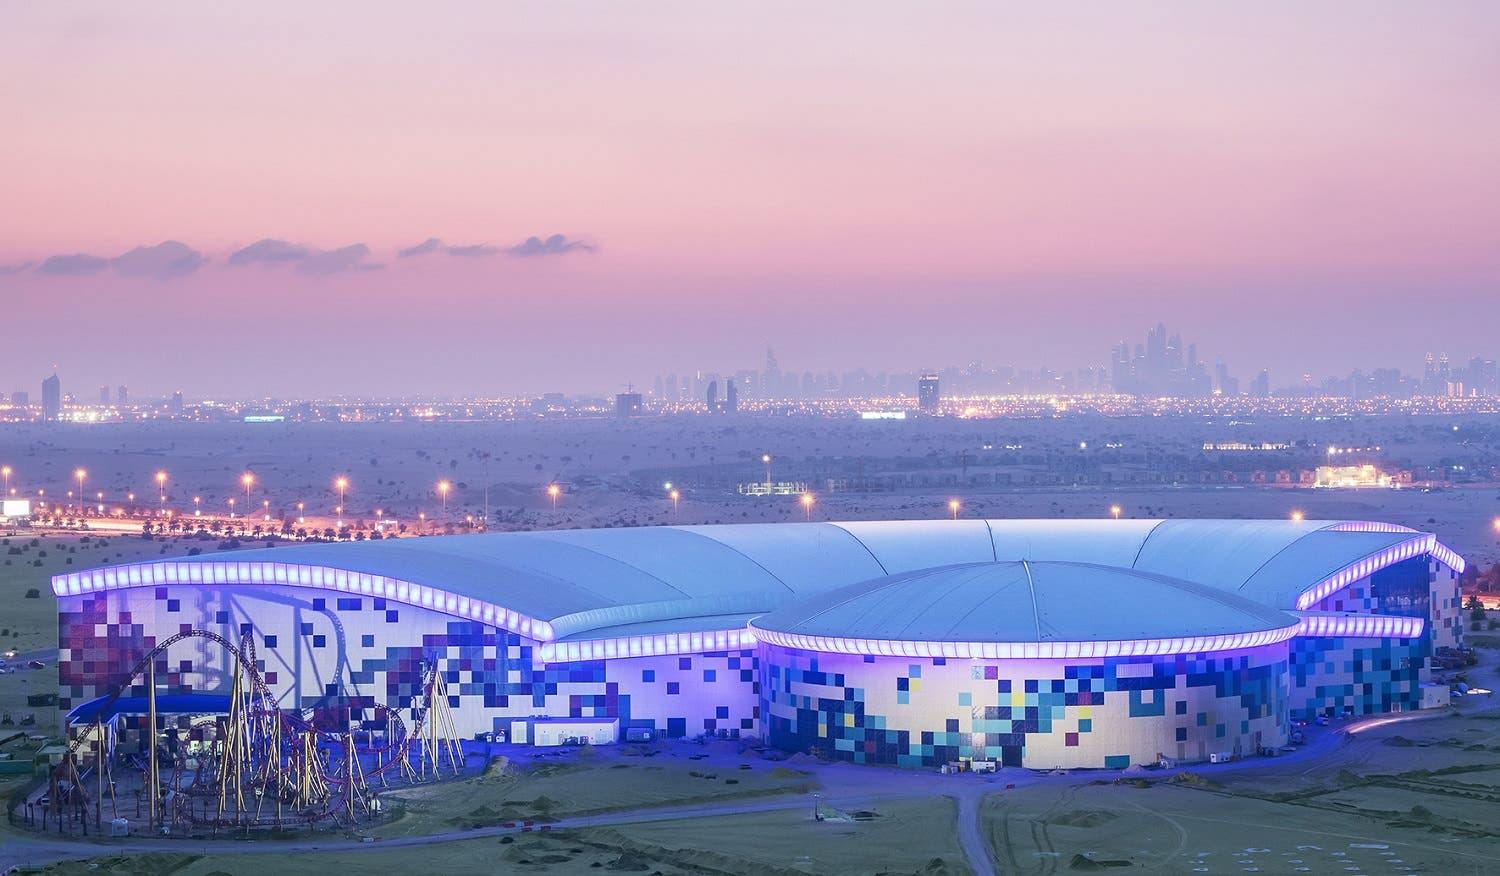 IMG Worlds of Adventure in Dubai, the world's largest indoor theme park. (Supplied)